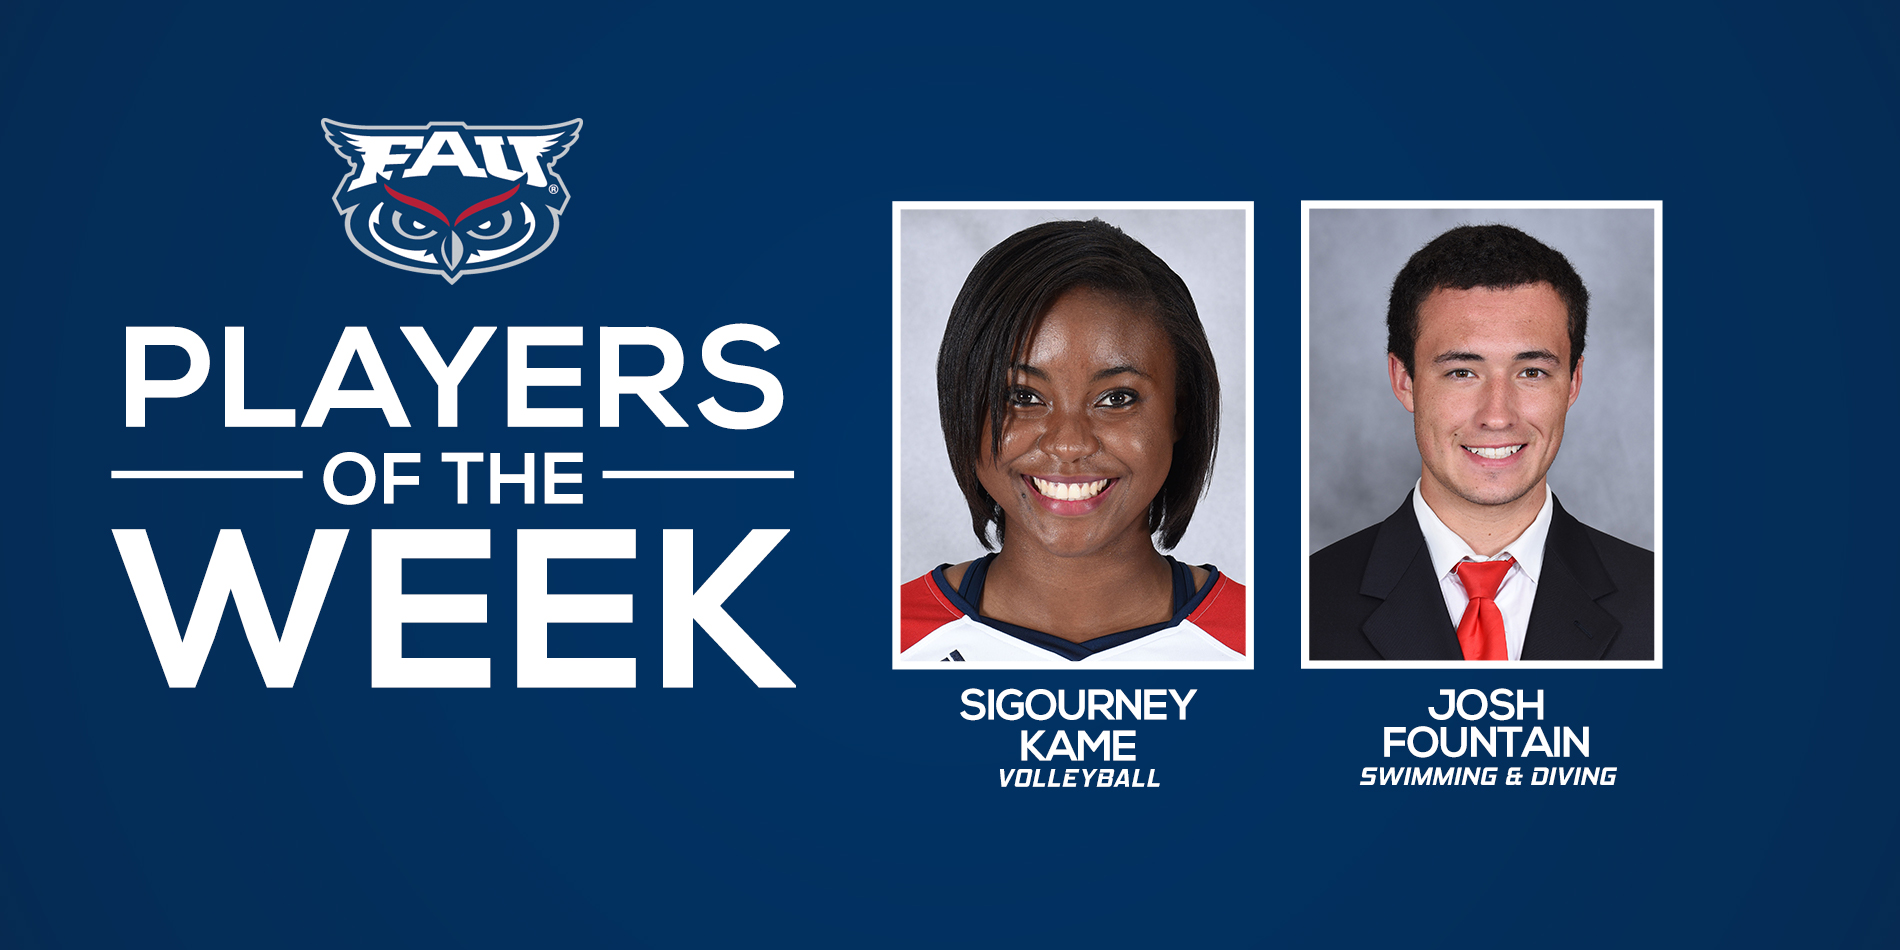 Kame, Fountain Players of the Week